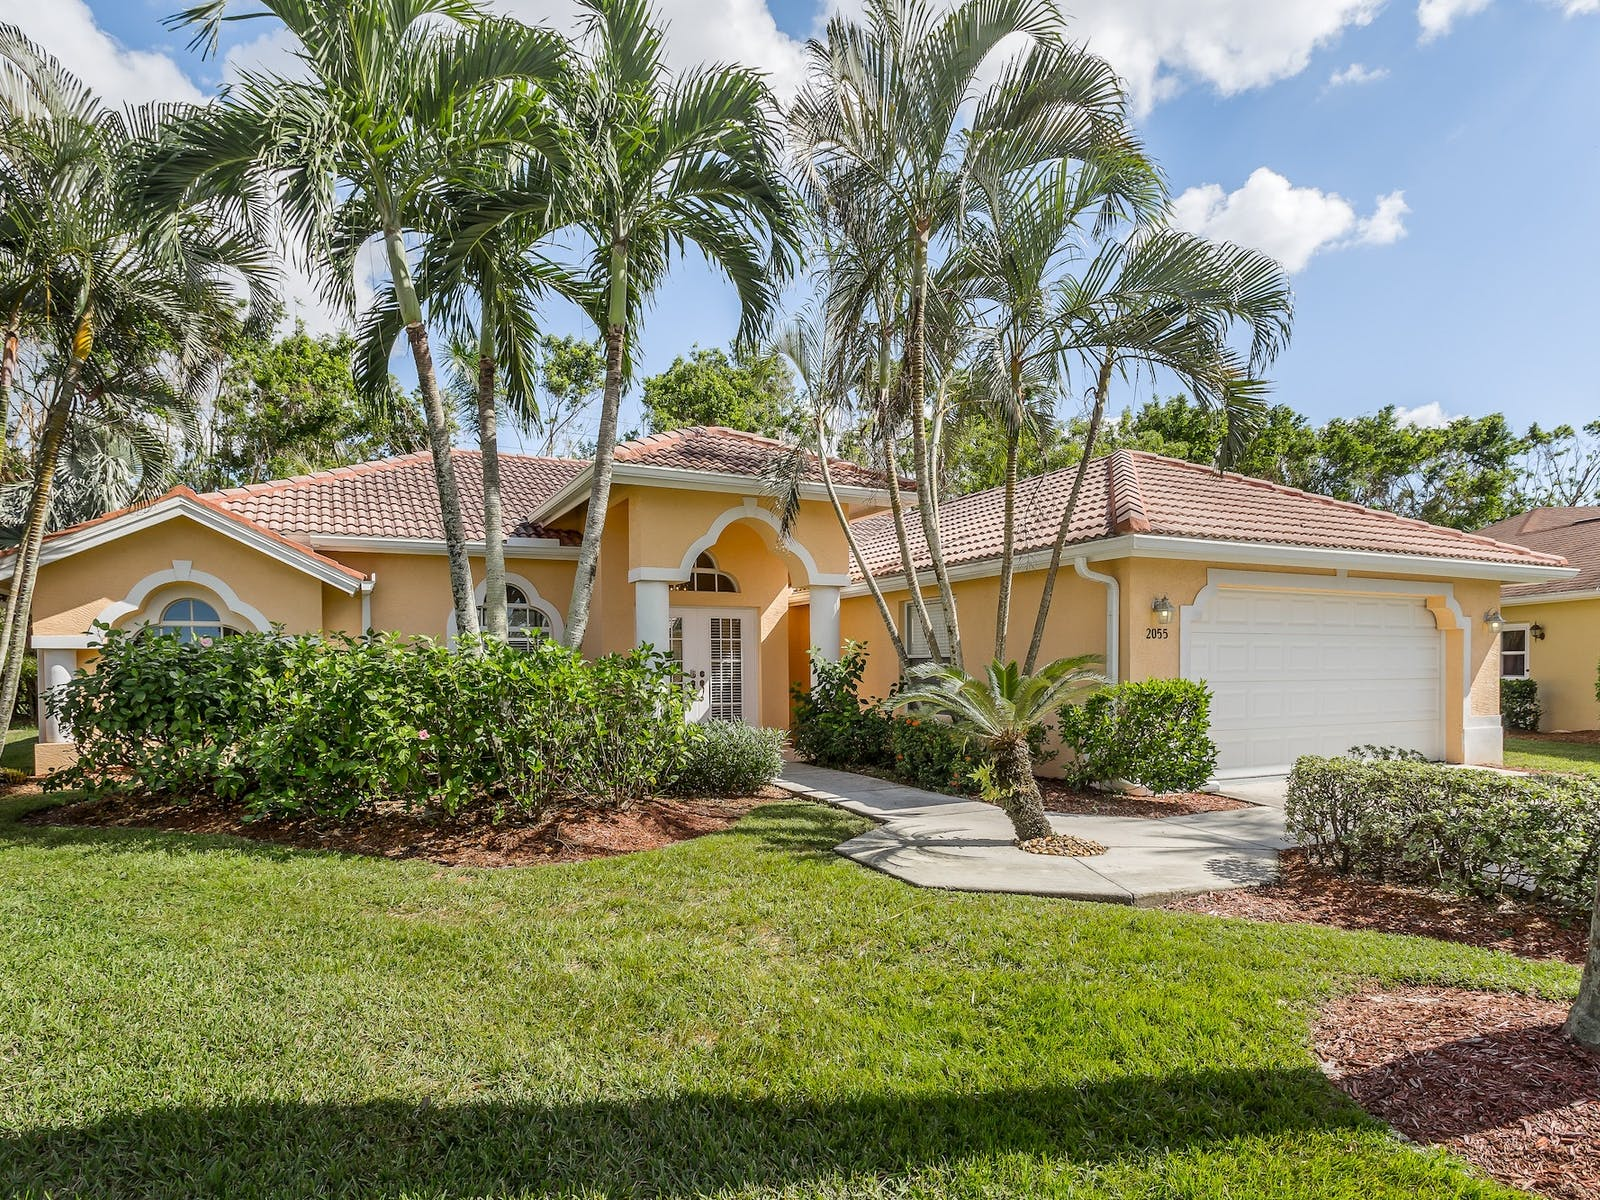 front yard of a vacation home in naples, florida